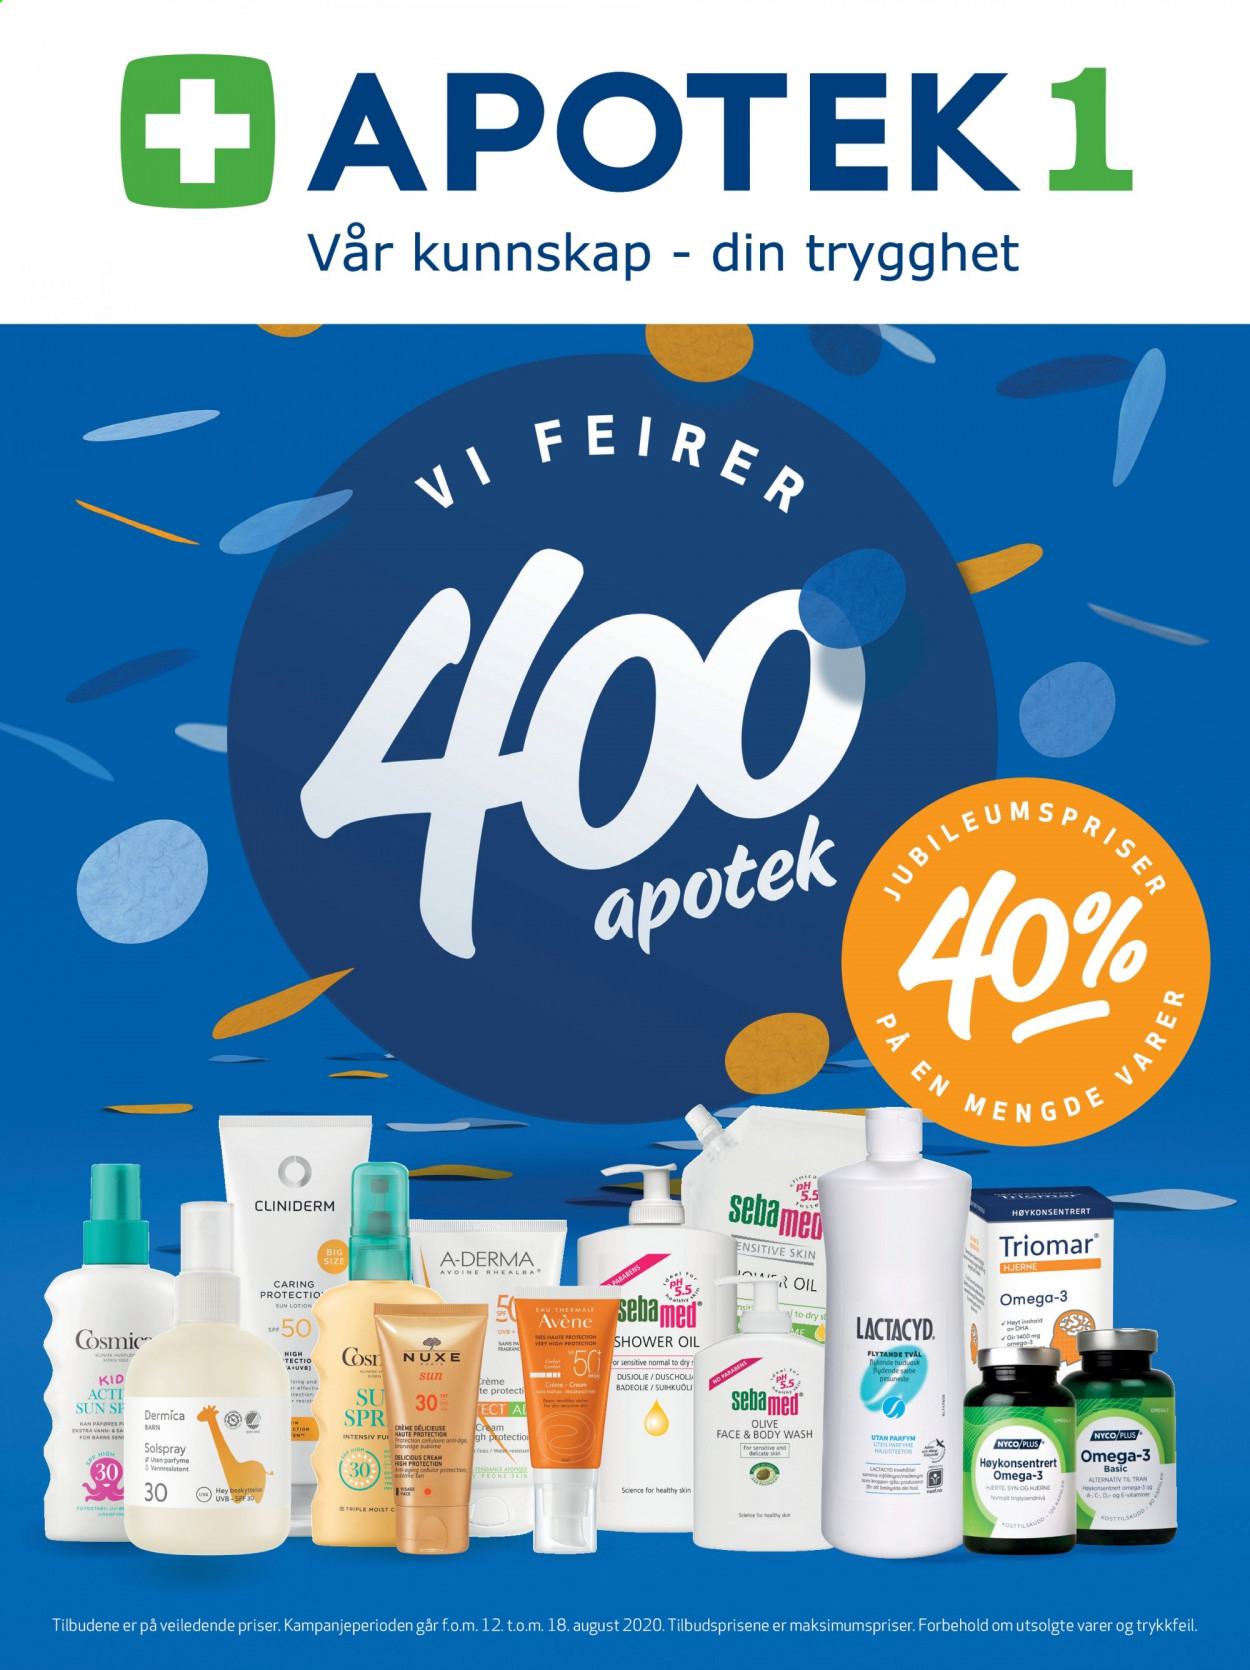 Kundeavis Apotek 1 - 12.08.2020 - 18.08.2020 - Produkter fra tilbudsaviser - body wash, fragrance, høykonsentrert, lactacid, omega-3, shower oil, cream, vann. Side 1.